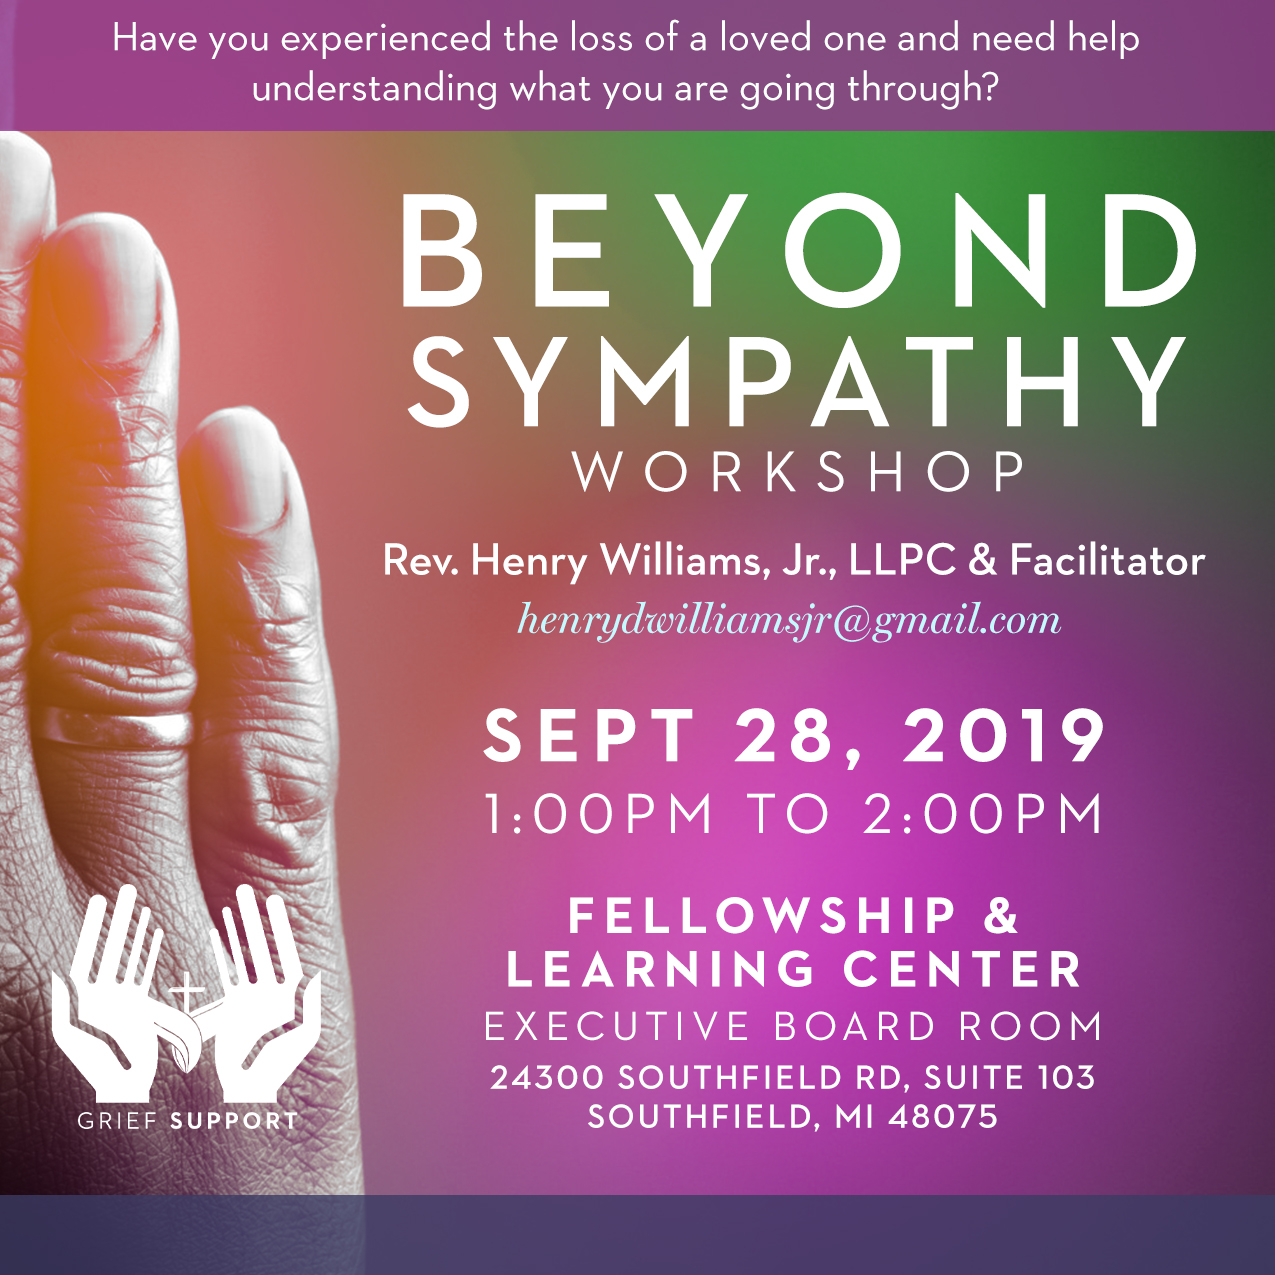 Beyond Sympathy Workshop